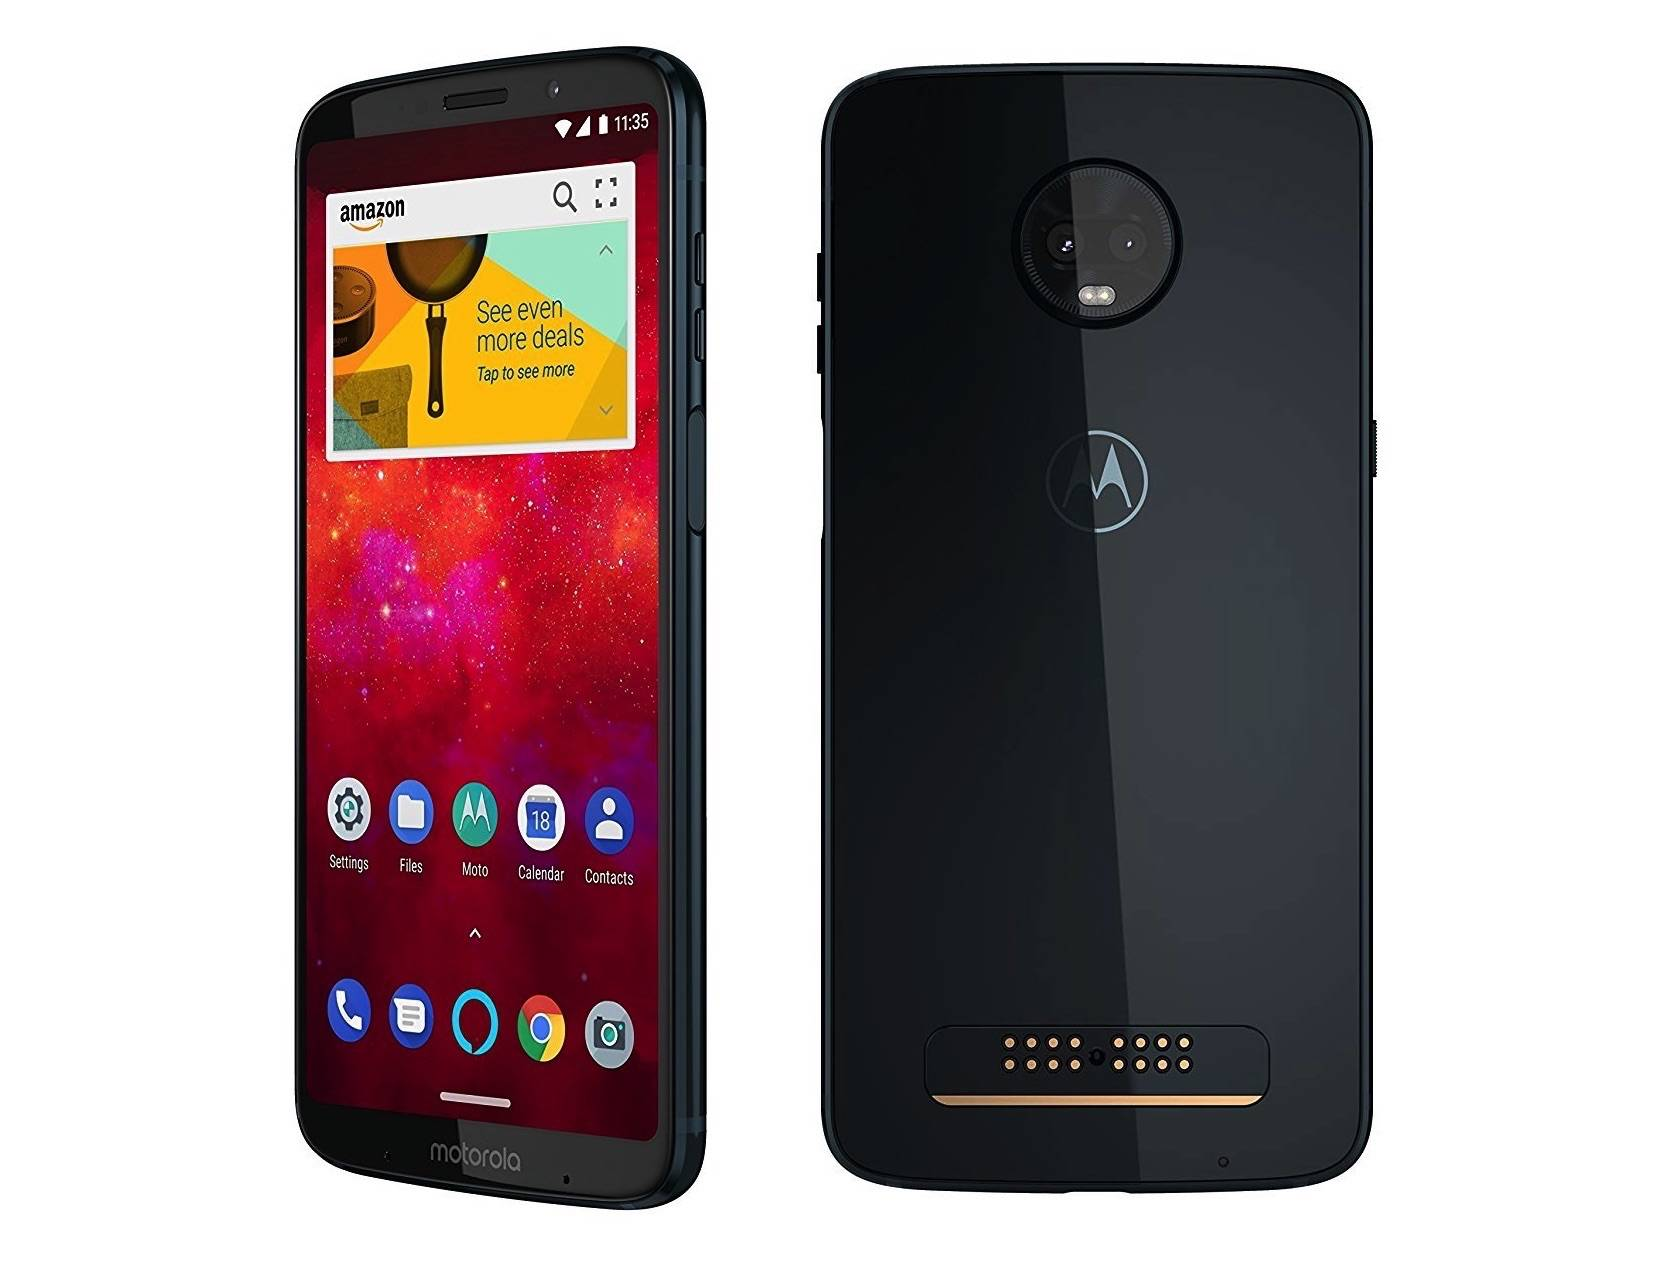 hot sale online 0fca0 a7a29 Moto Z3 Play, Moto G6 Play are now Amazon Prime Exclusive phones ...